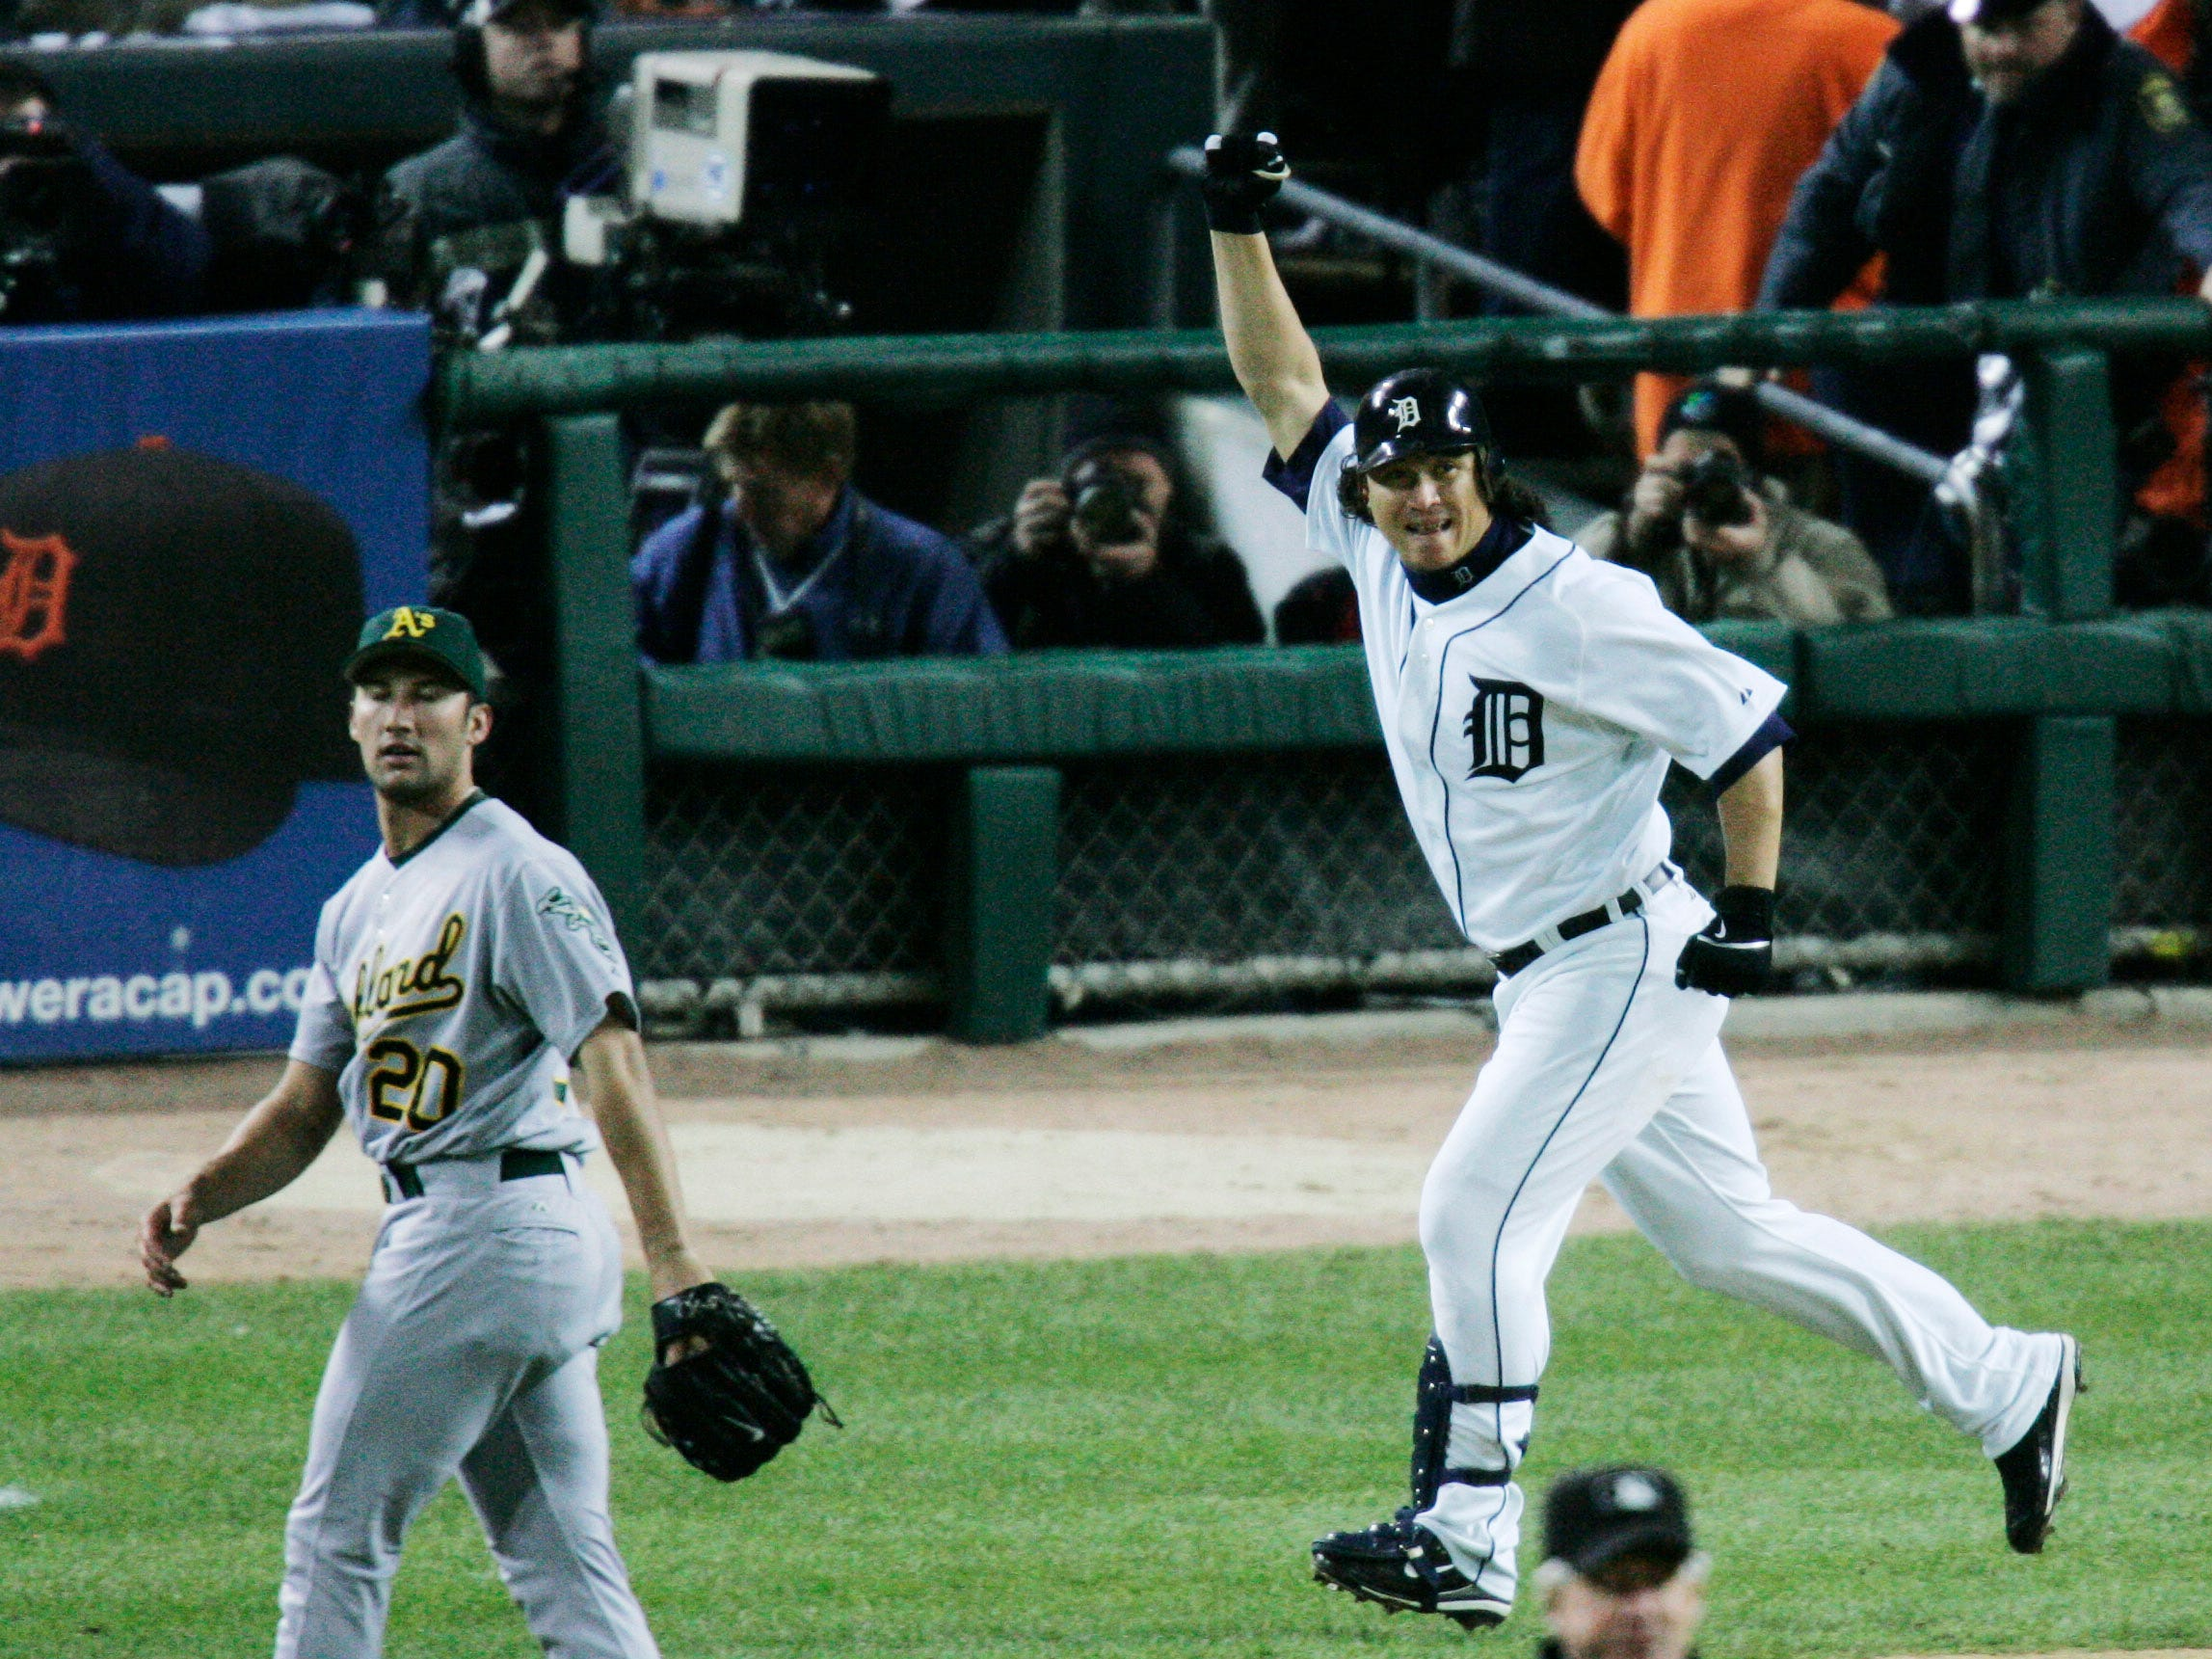 2006 ALCS Game 4: Magglio Ordonez hit a three-run walk-off homer against the Oakland Athletics to clinch the Tigers' spot in the World Series.